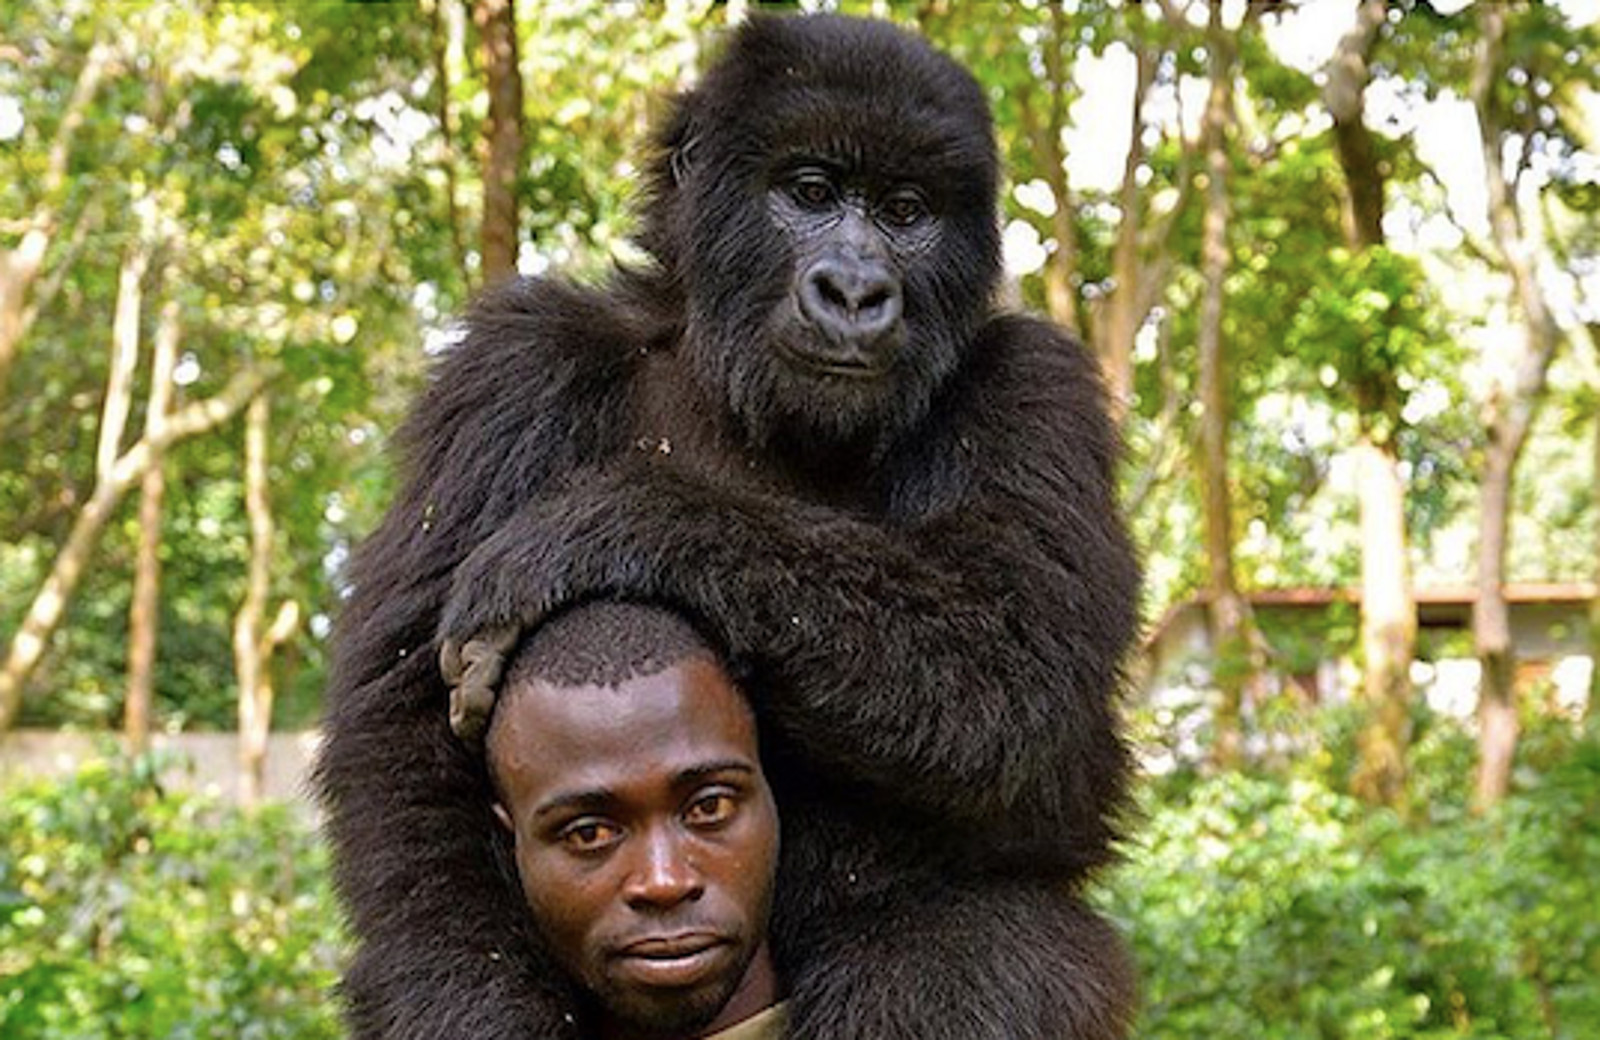 This Image of an Endangered Mountain Gorilla With a Brave Man Who is Devoted to Protecting Him Will Touch Your Heart